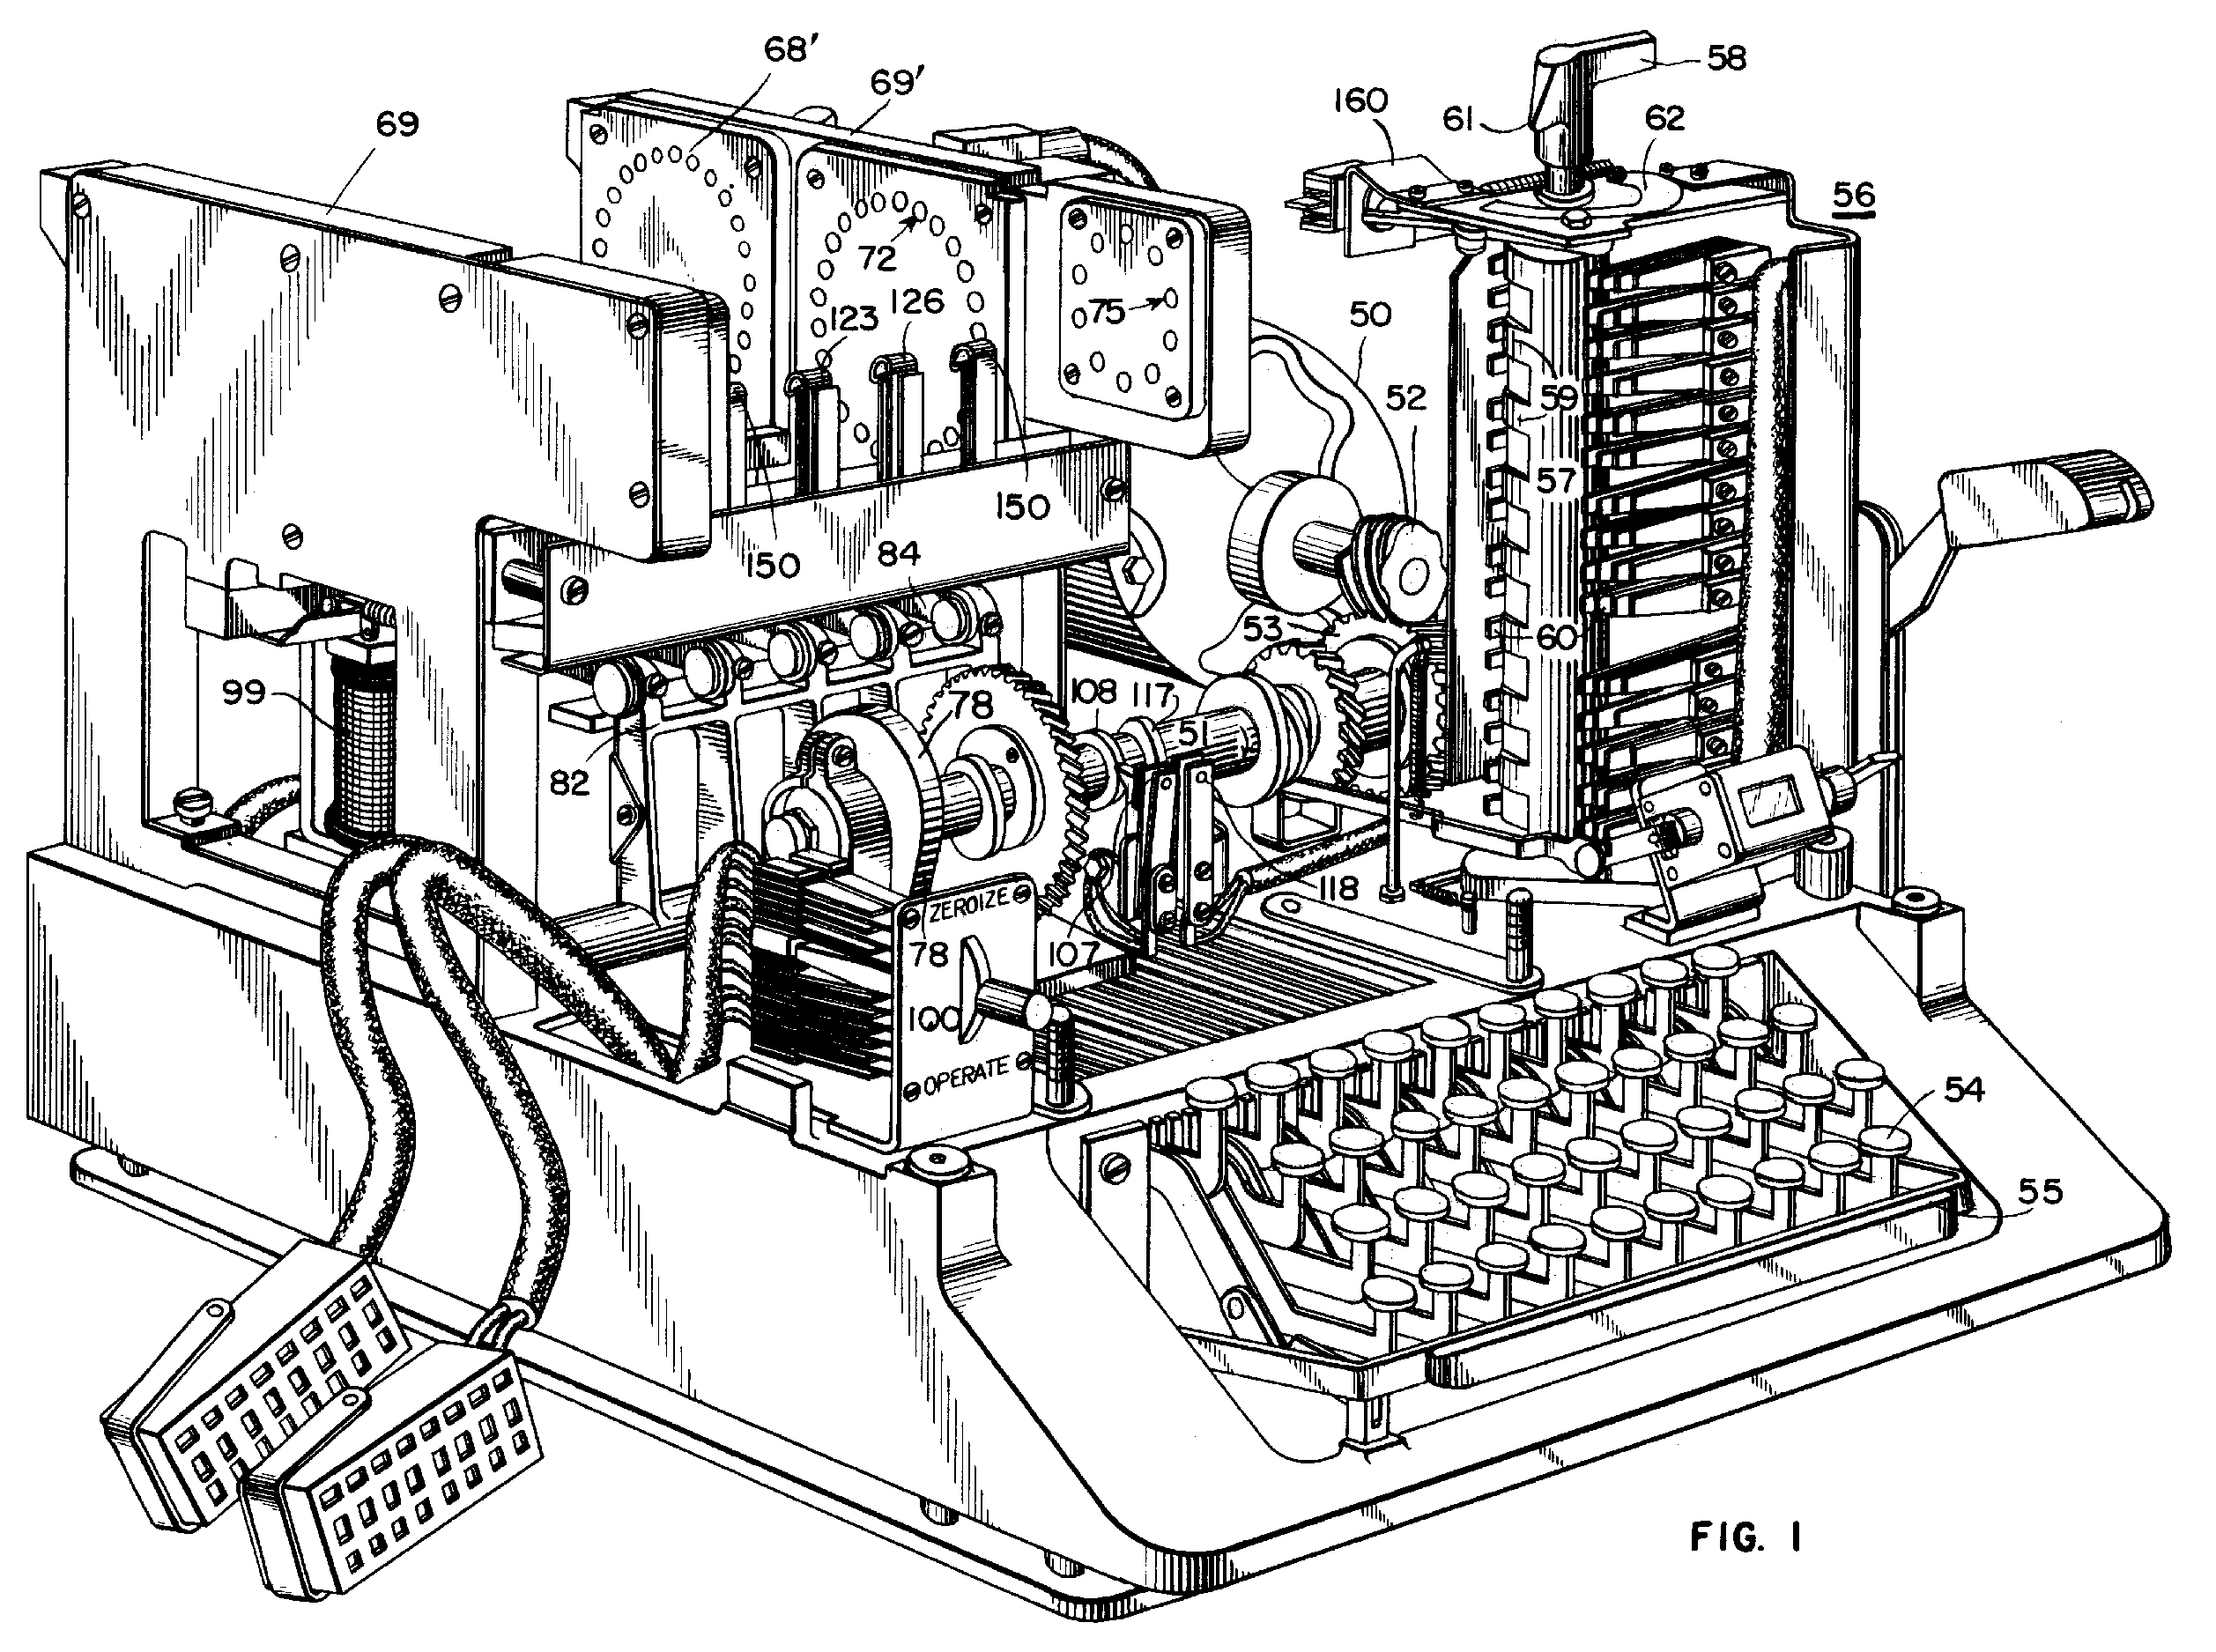 Diagram of the SIGABA machine